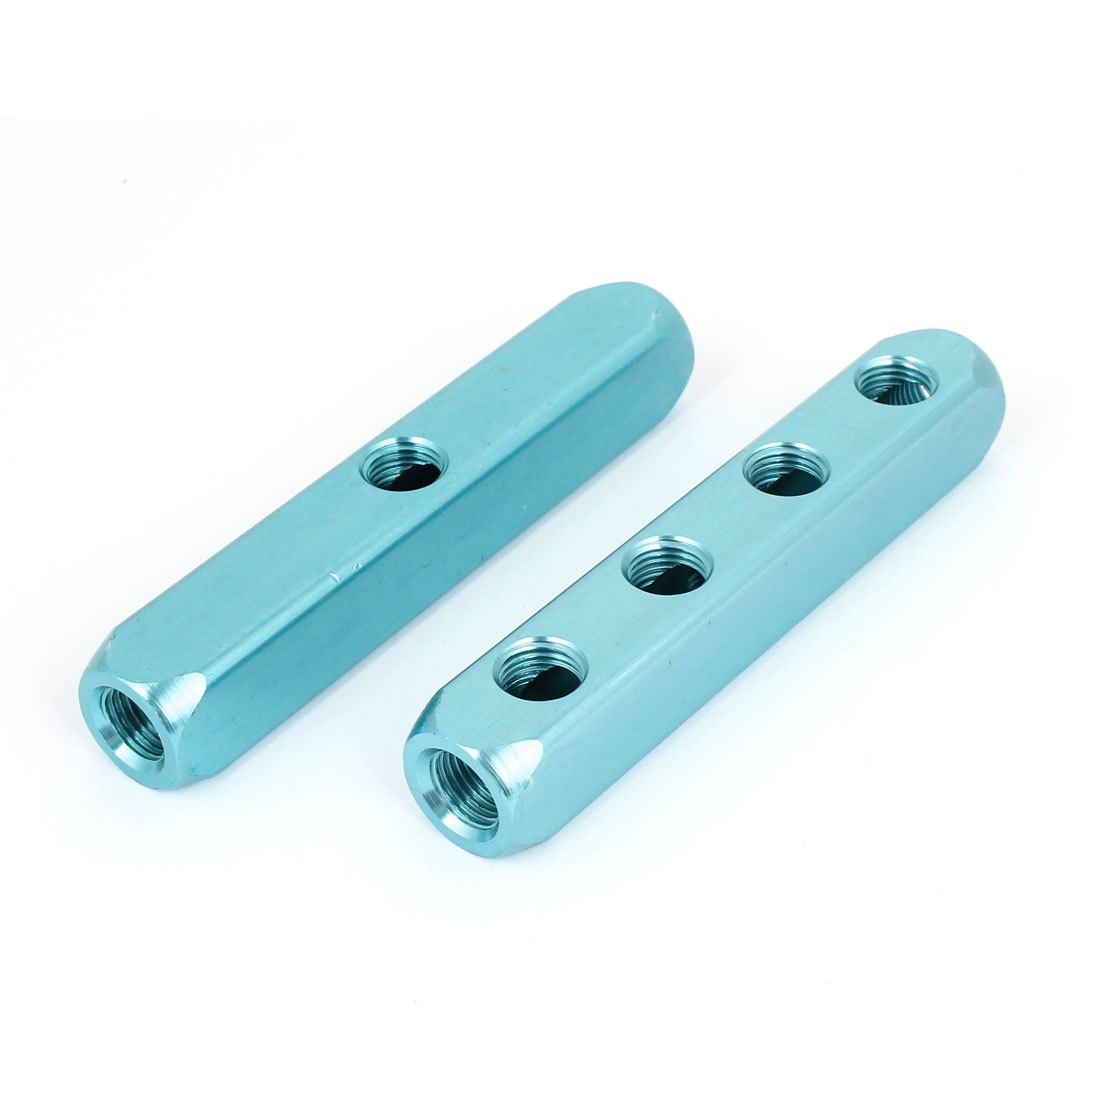 1/4PT Thread 7 Ports Quick Connector Air Hose Manifold Block Splitter Sky Blue 2pcs